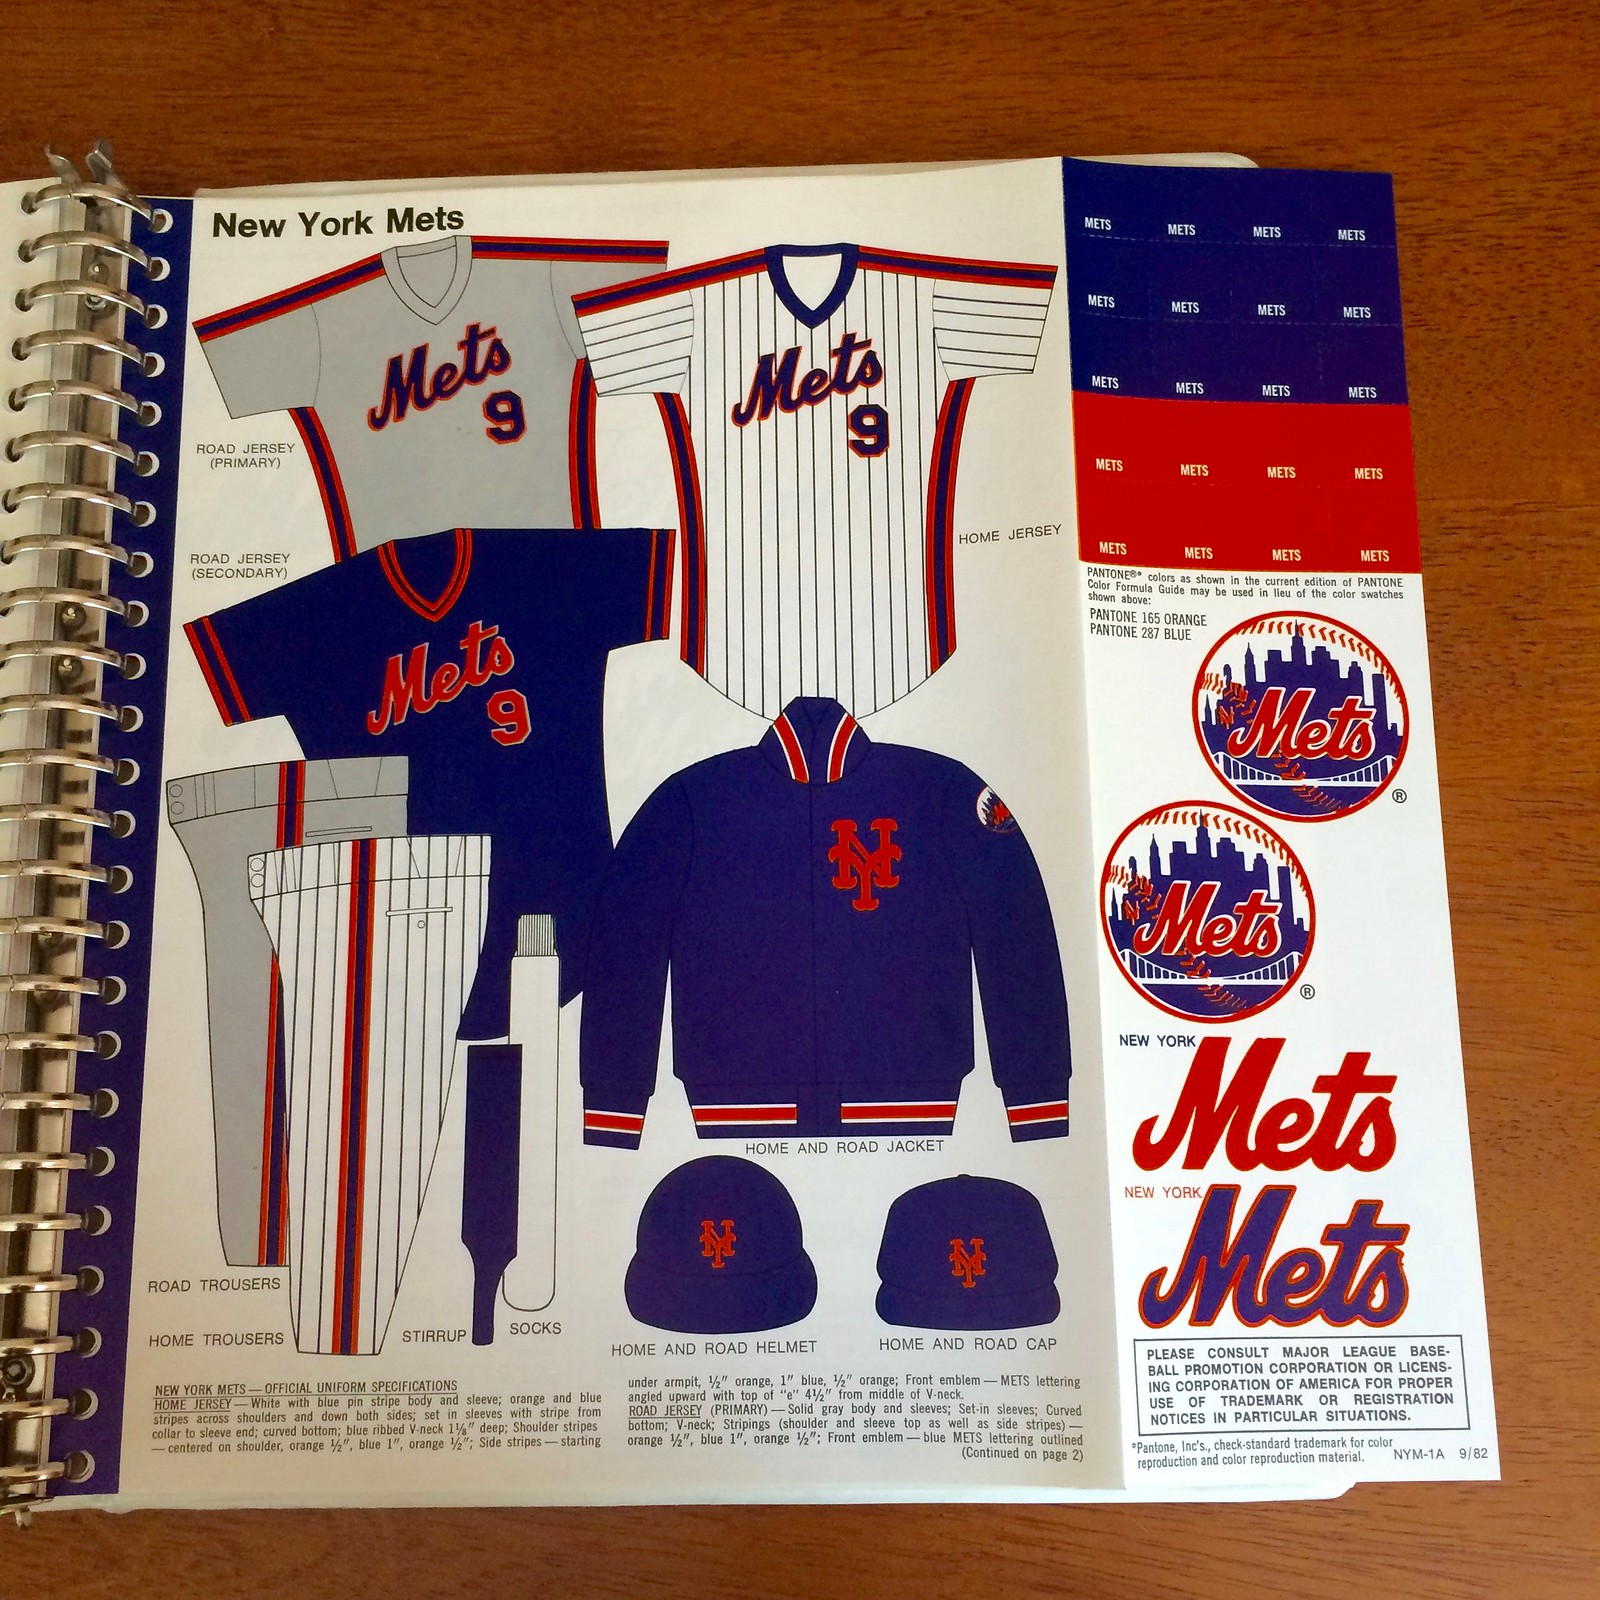 91b4cb8b575e The style guide shows yet another variation — a blue road jersey with  orange grey typography and orange blue trim on the sleeves and collar